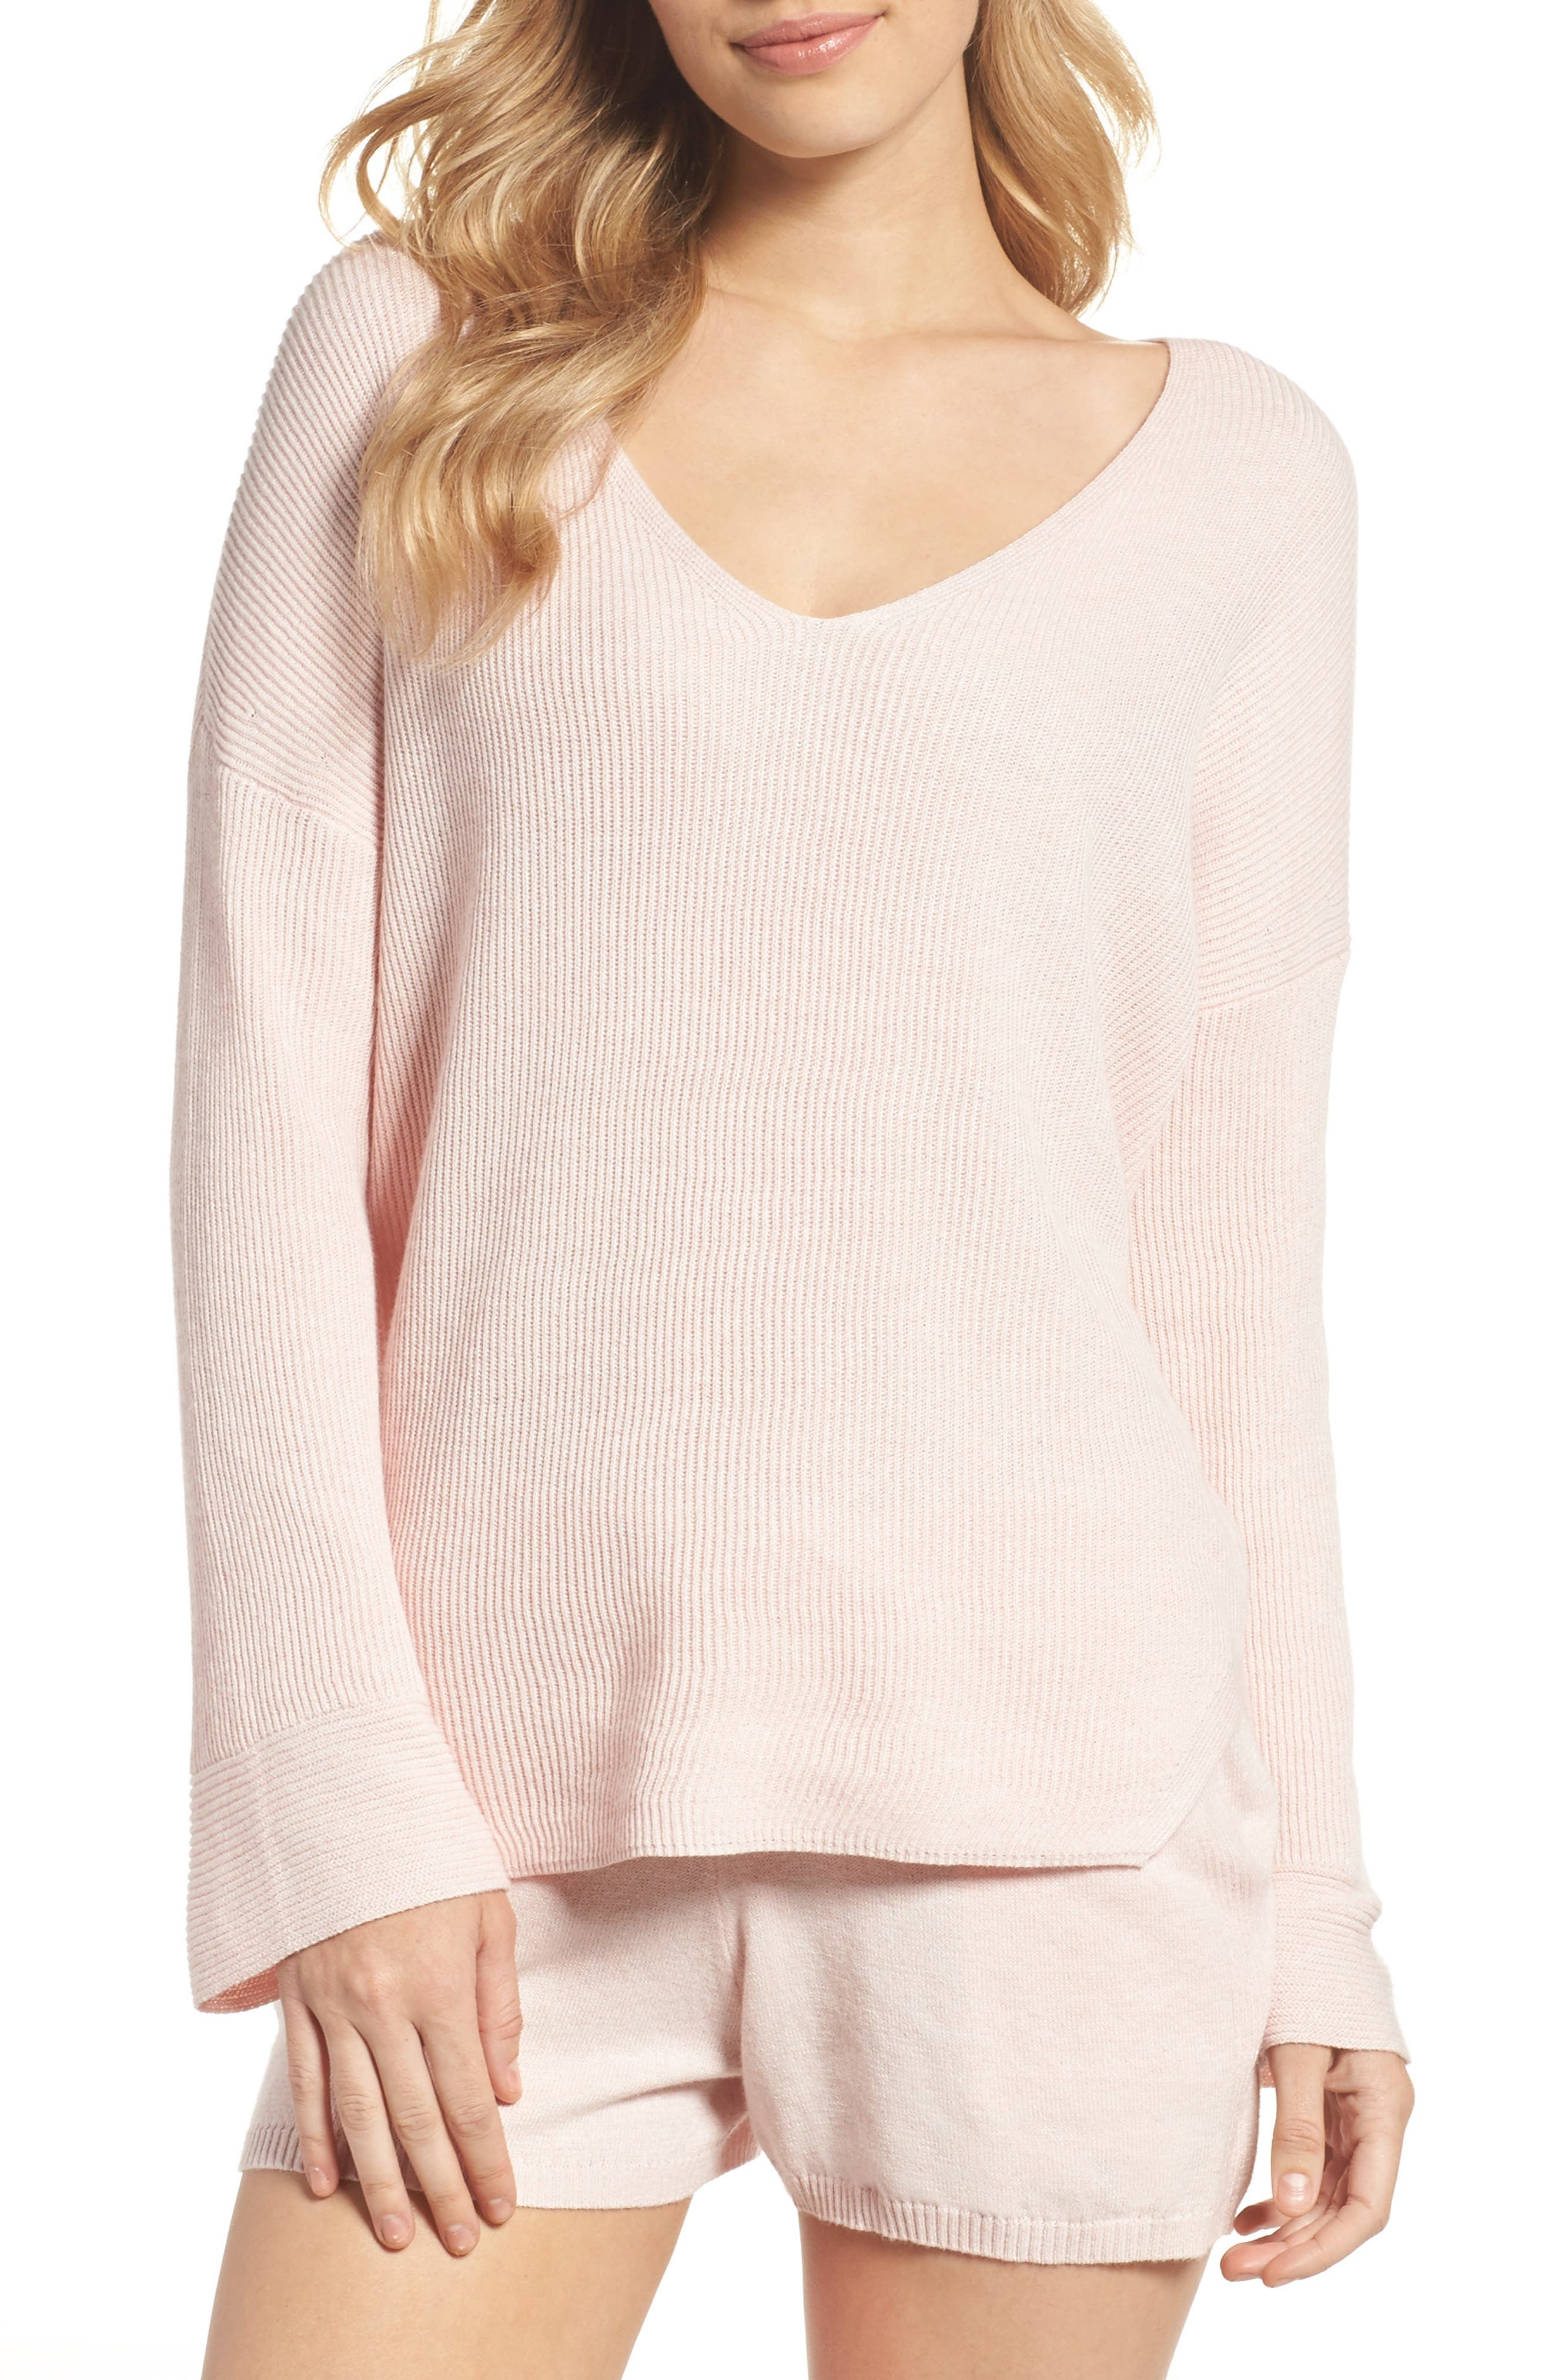 Veronica Lounge Pullover,                             Main thumbnail 2, color,